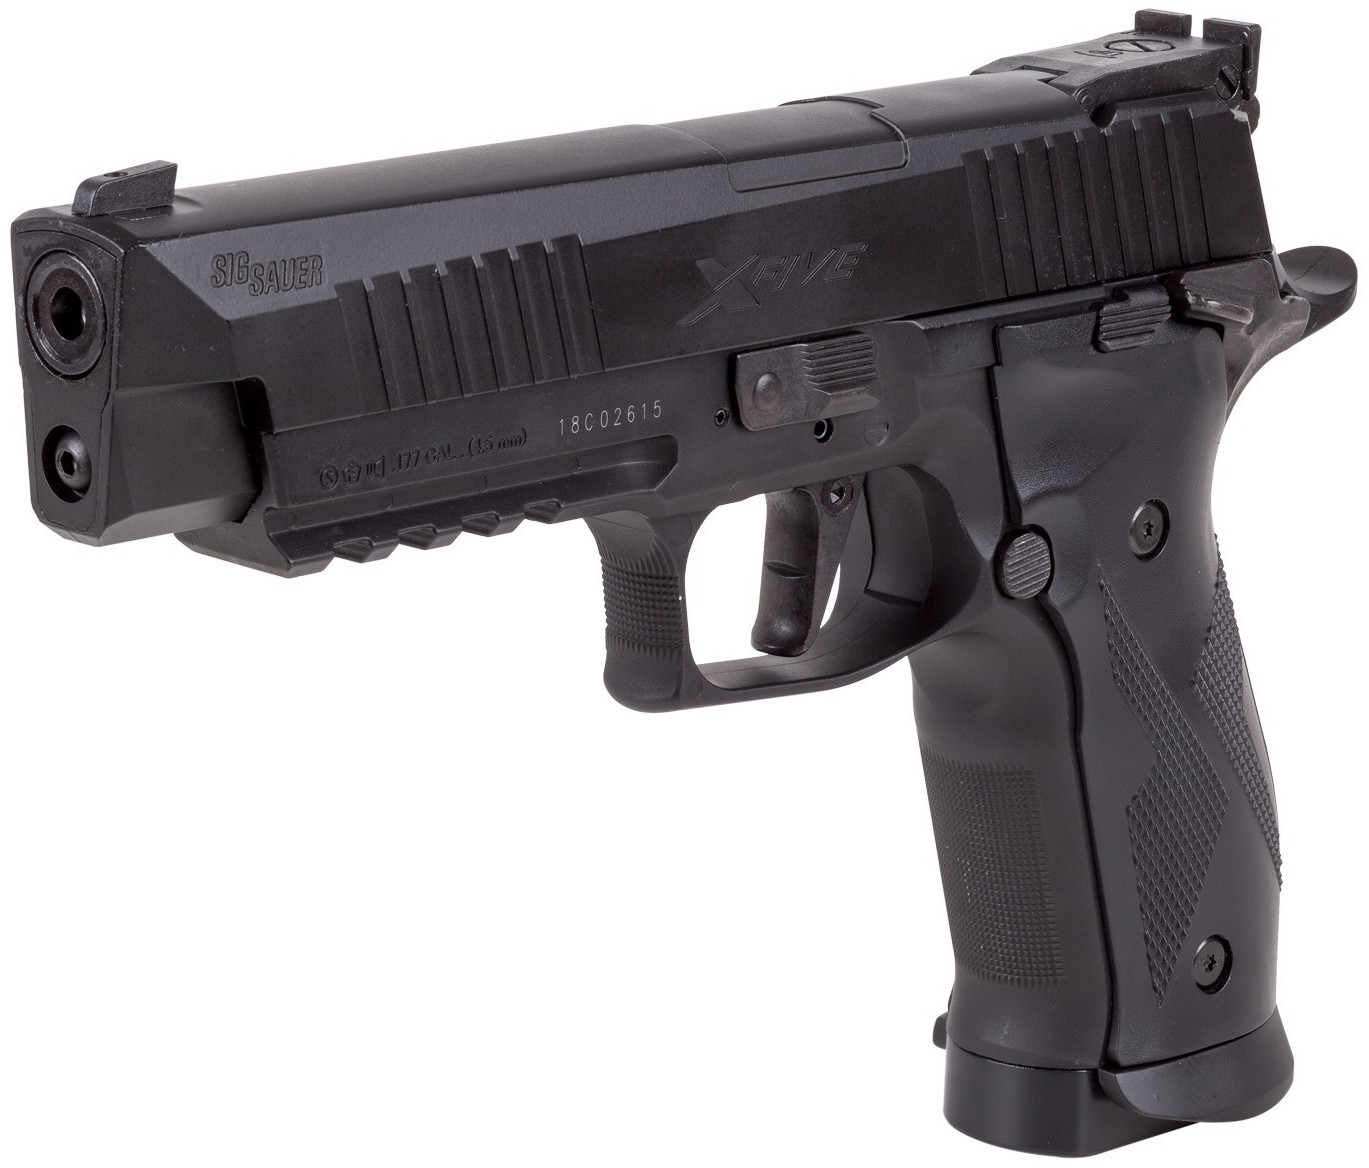 Sig Sauer X-Five ASP Left Side Angle.jpg